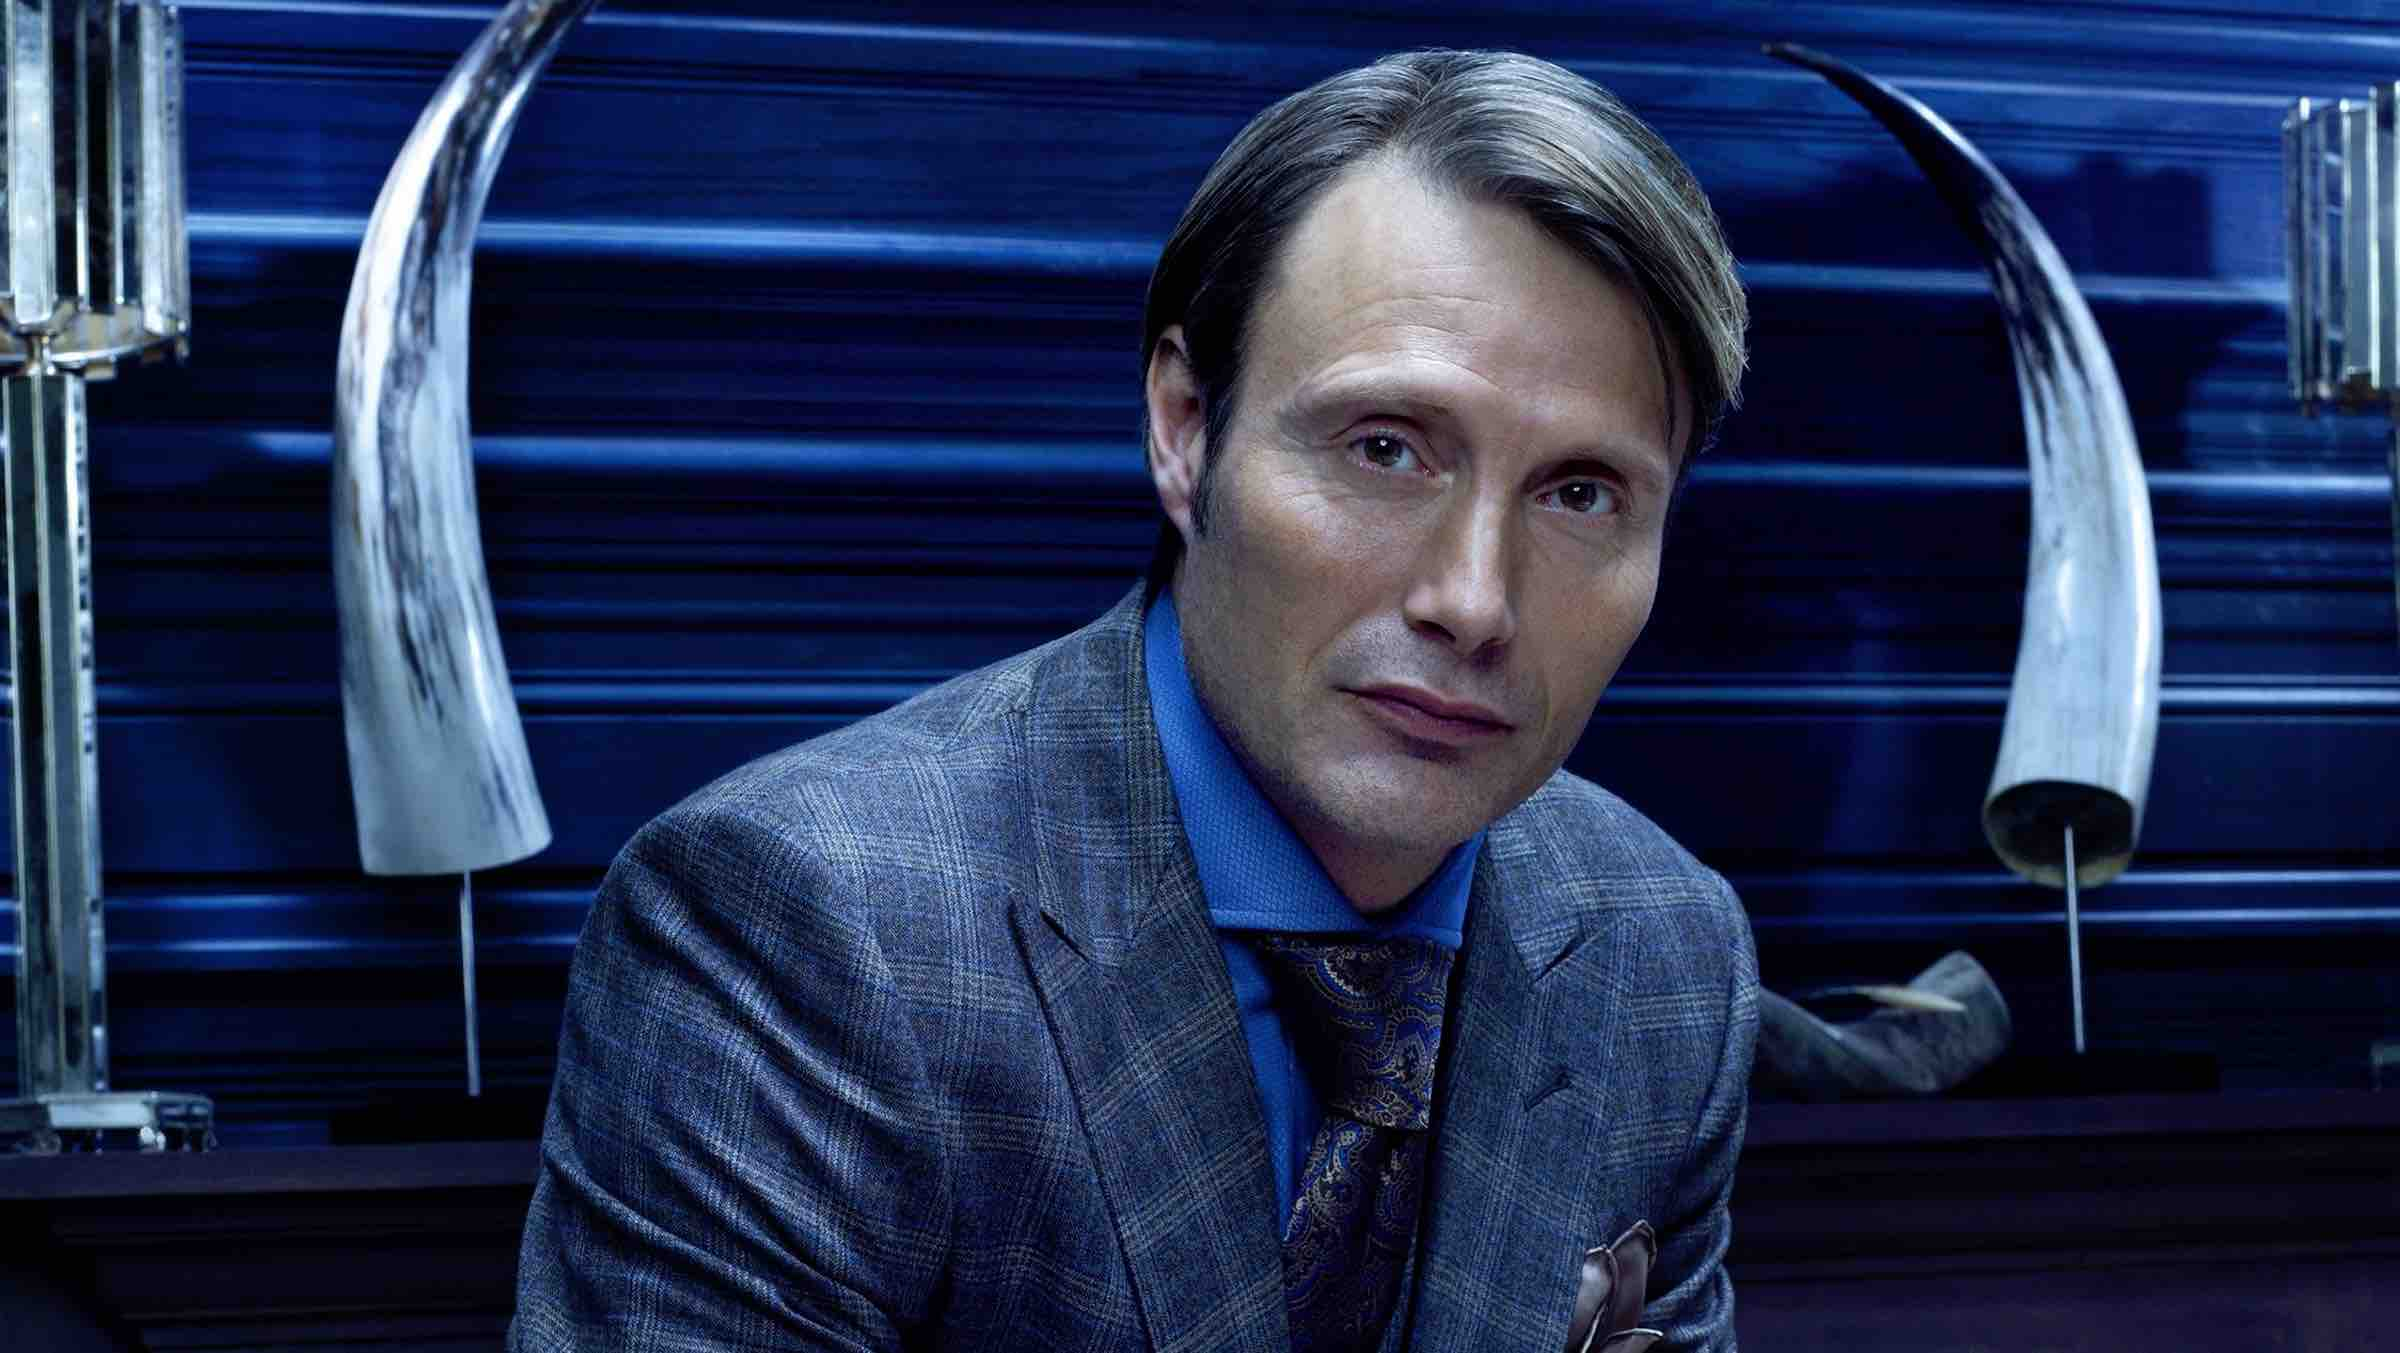 We were nowhere near ready for 'Hannibal' to end. Let's make a short film about 'Hannibal' fans. Here's how you can get involved.